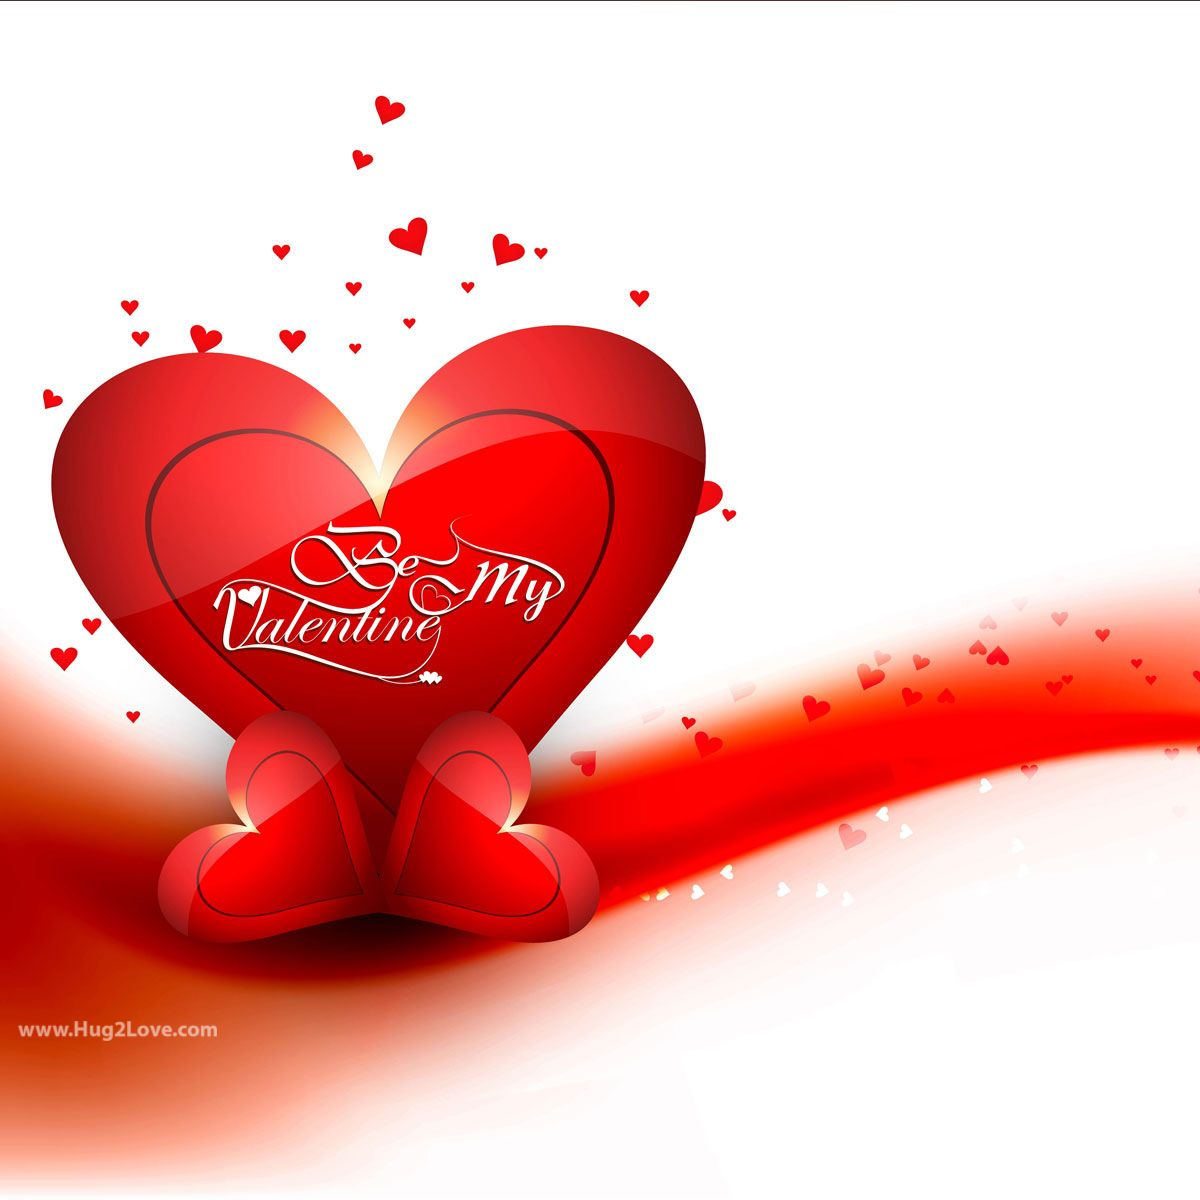 Valentines Wallpapers Cute For Boyfriend Girlfriend Him Her Wife Husband I Wish That You K Valentines Wallpaper Happy Valentines Day Card Happy Valentines Day